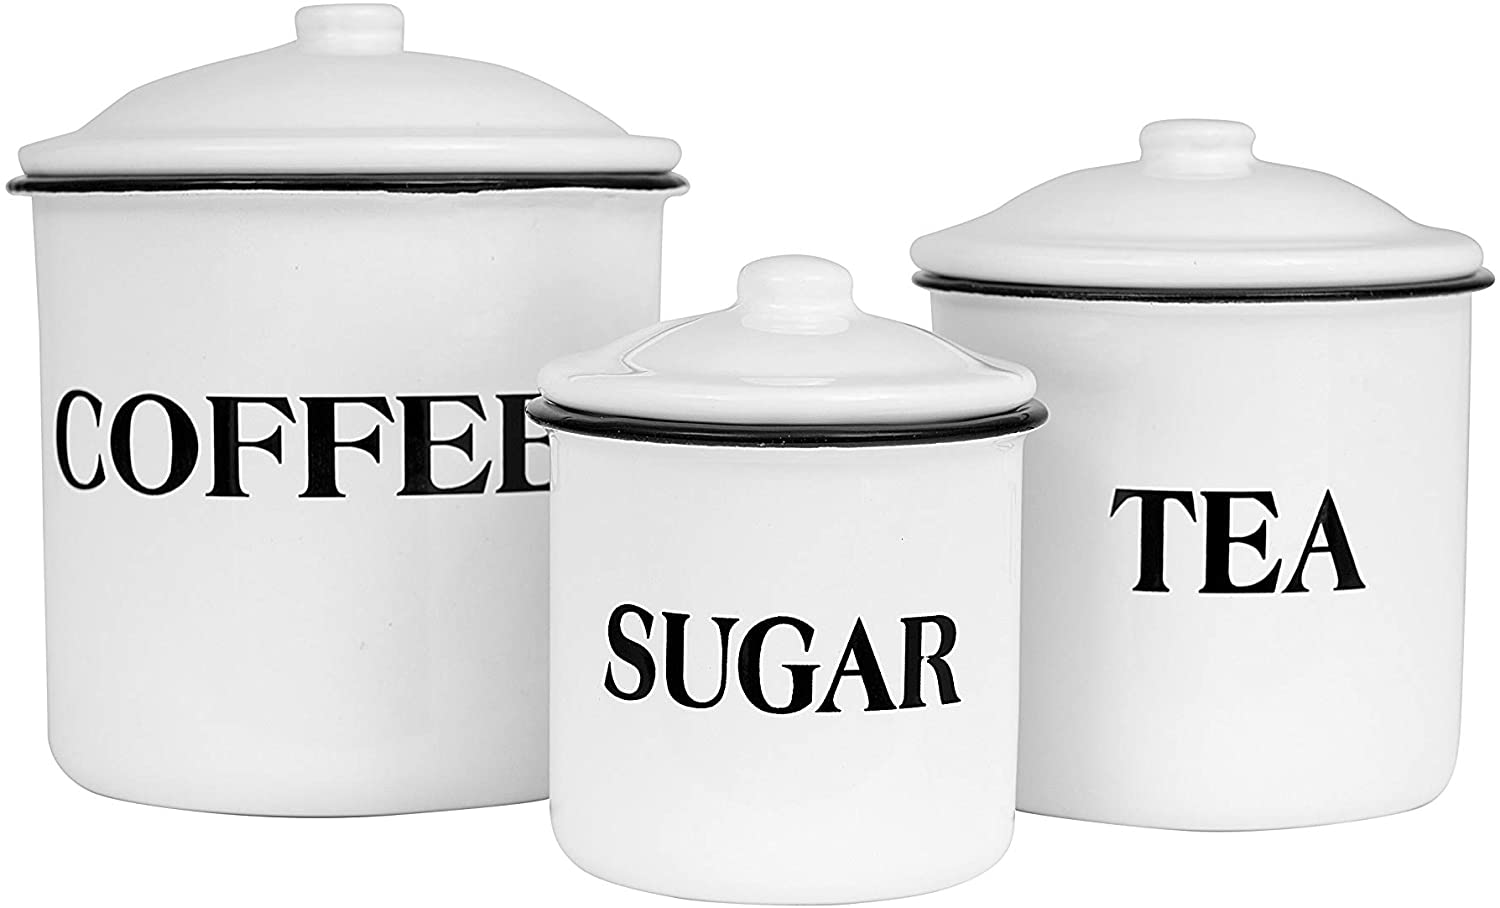 rise-and-grind-cofee-tea-sugar-canisters